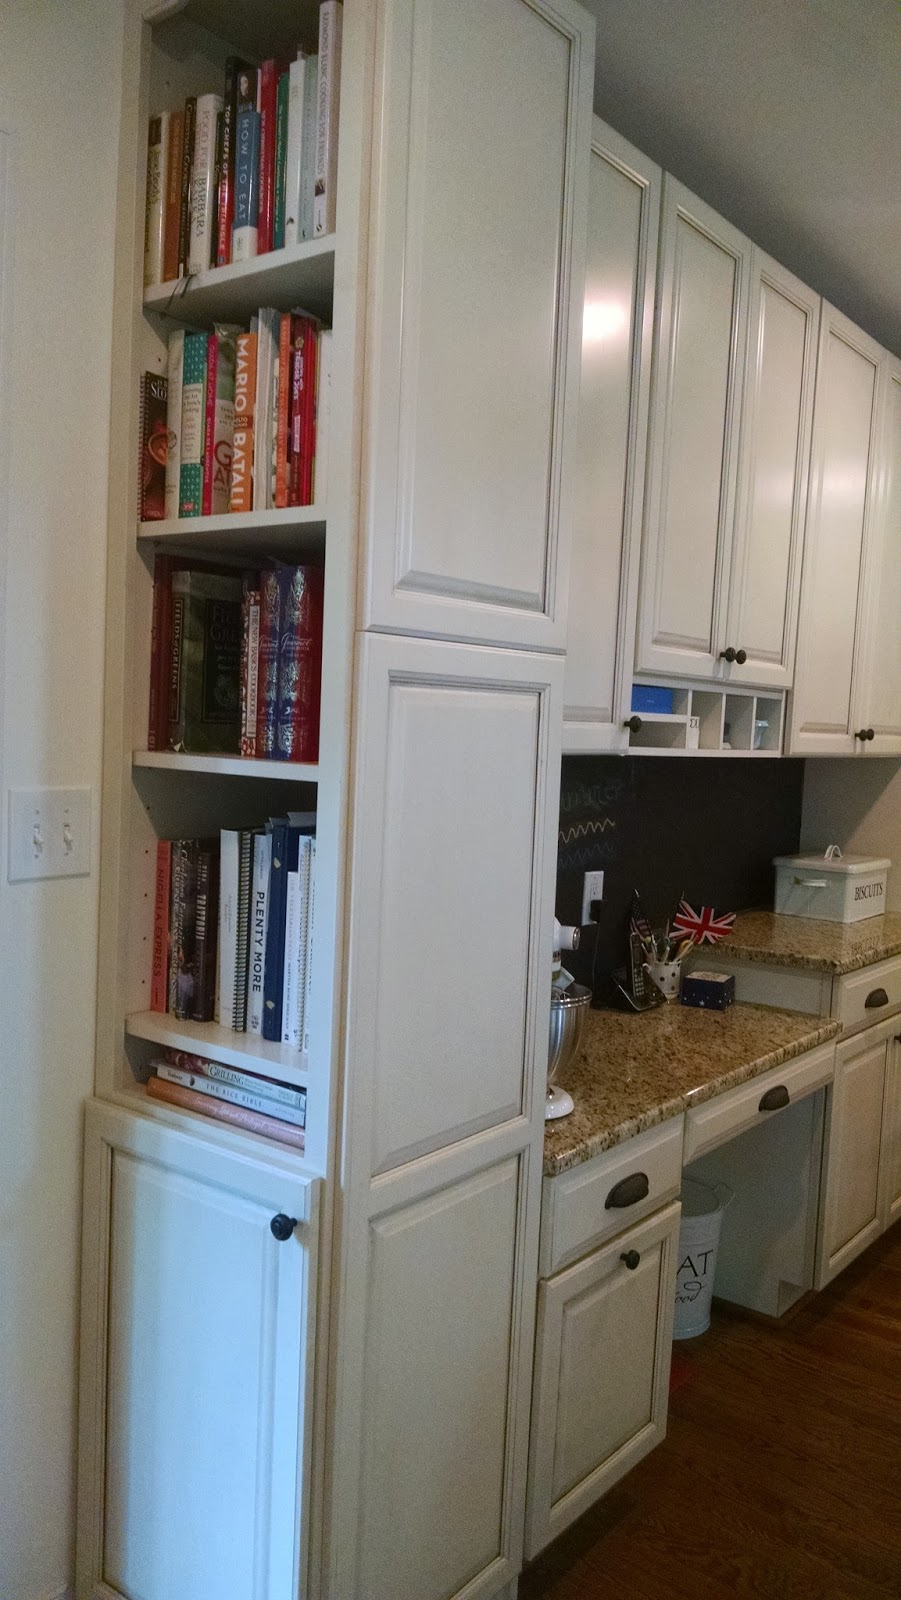 Kensington Kitchen Cabinets: Keeping It Real With Lisa LaCourse